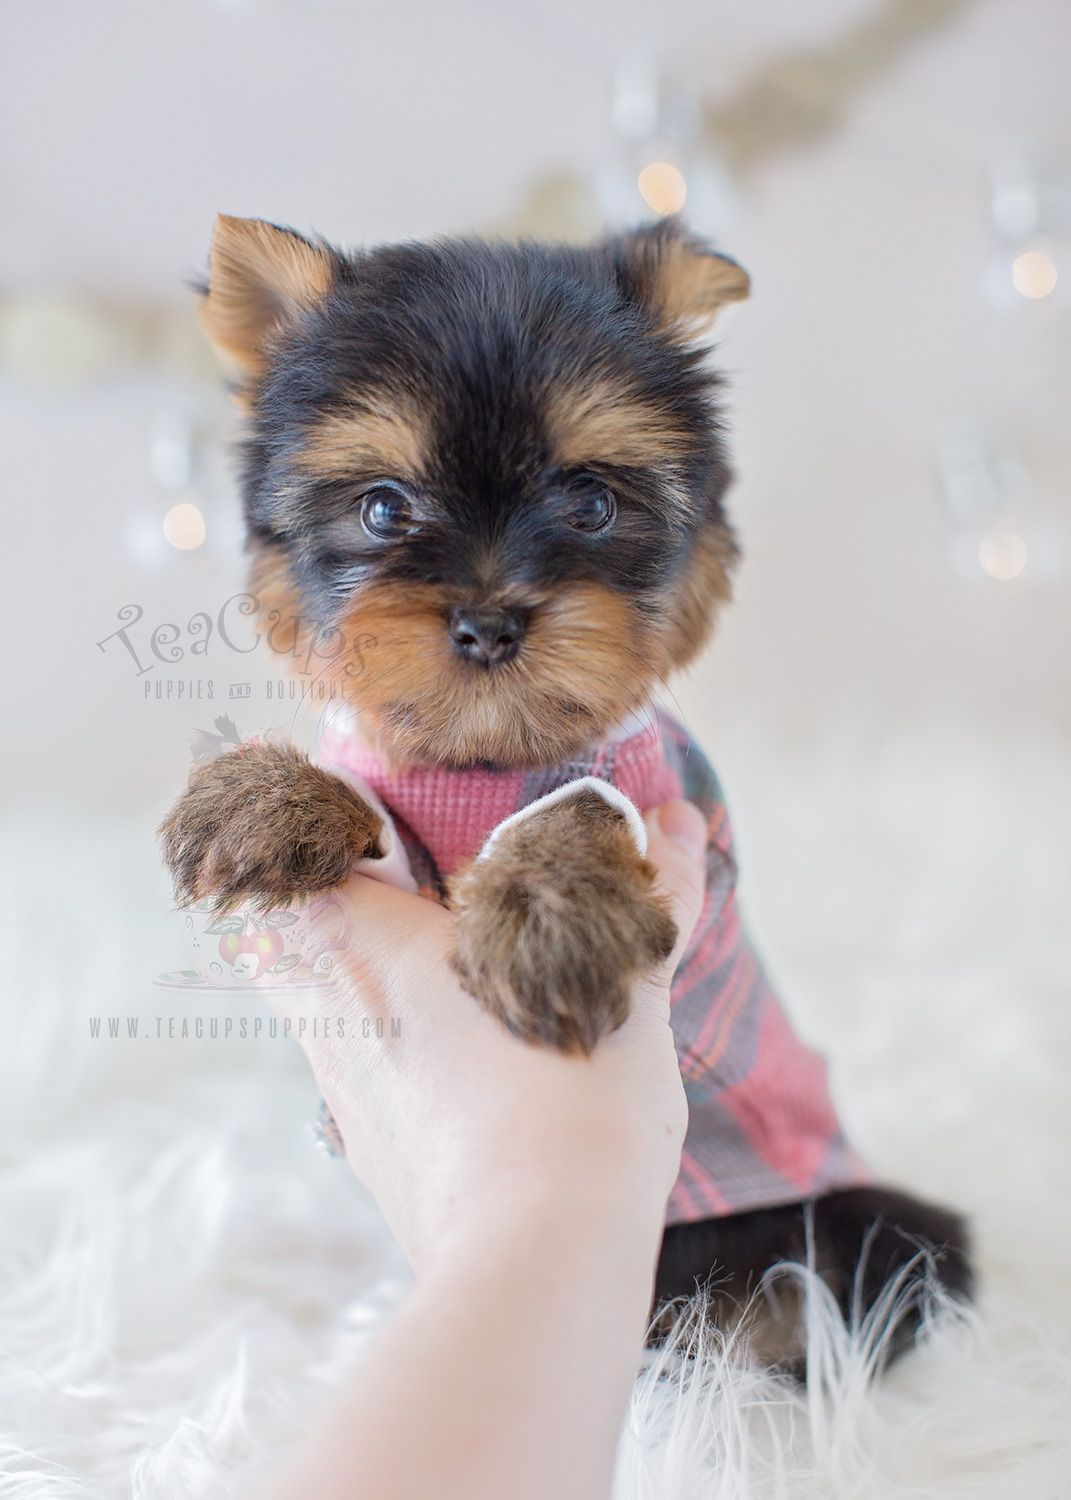 teacup yorkie for sale craigslist for sale teacup puppies 320 tiny yorkie puppy sweet 1738